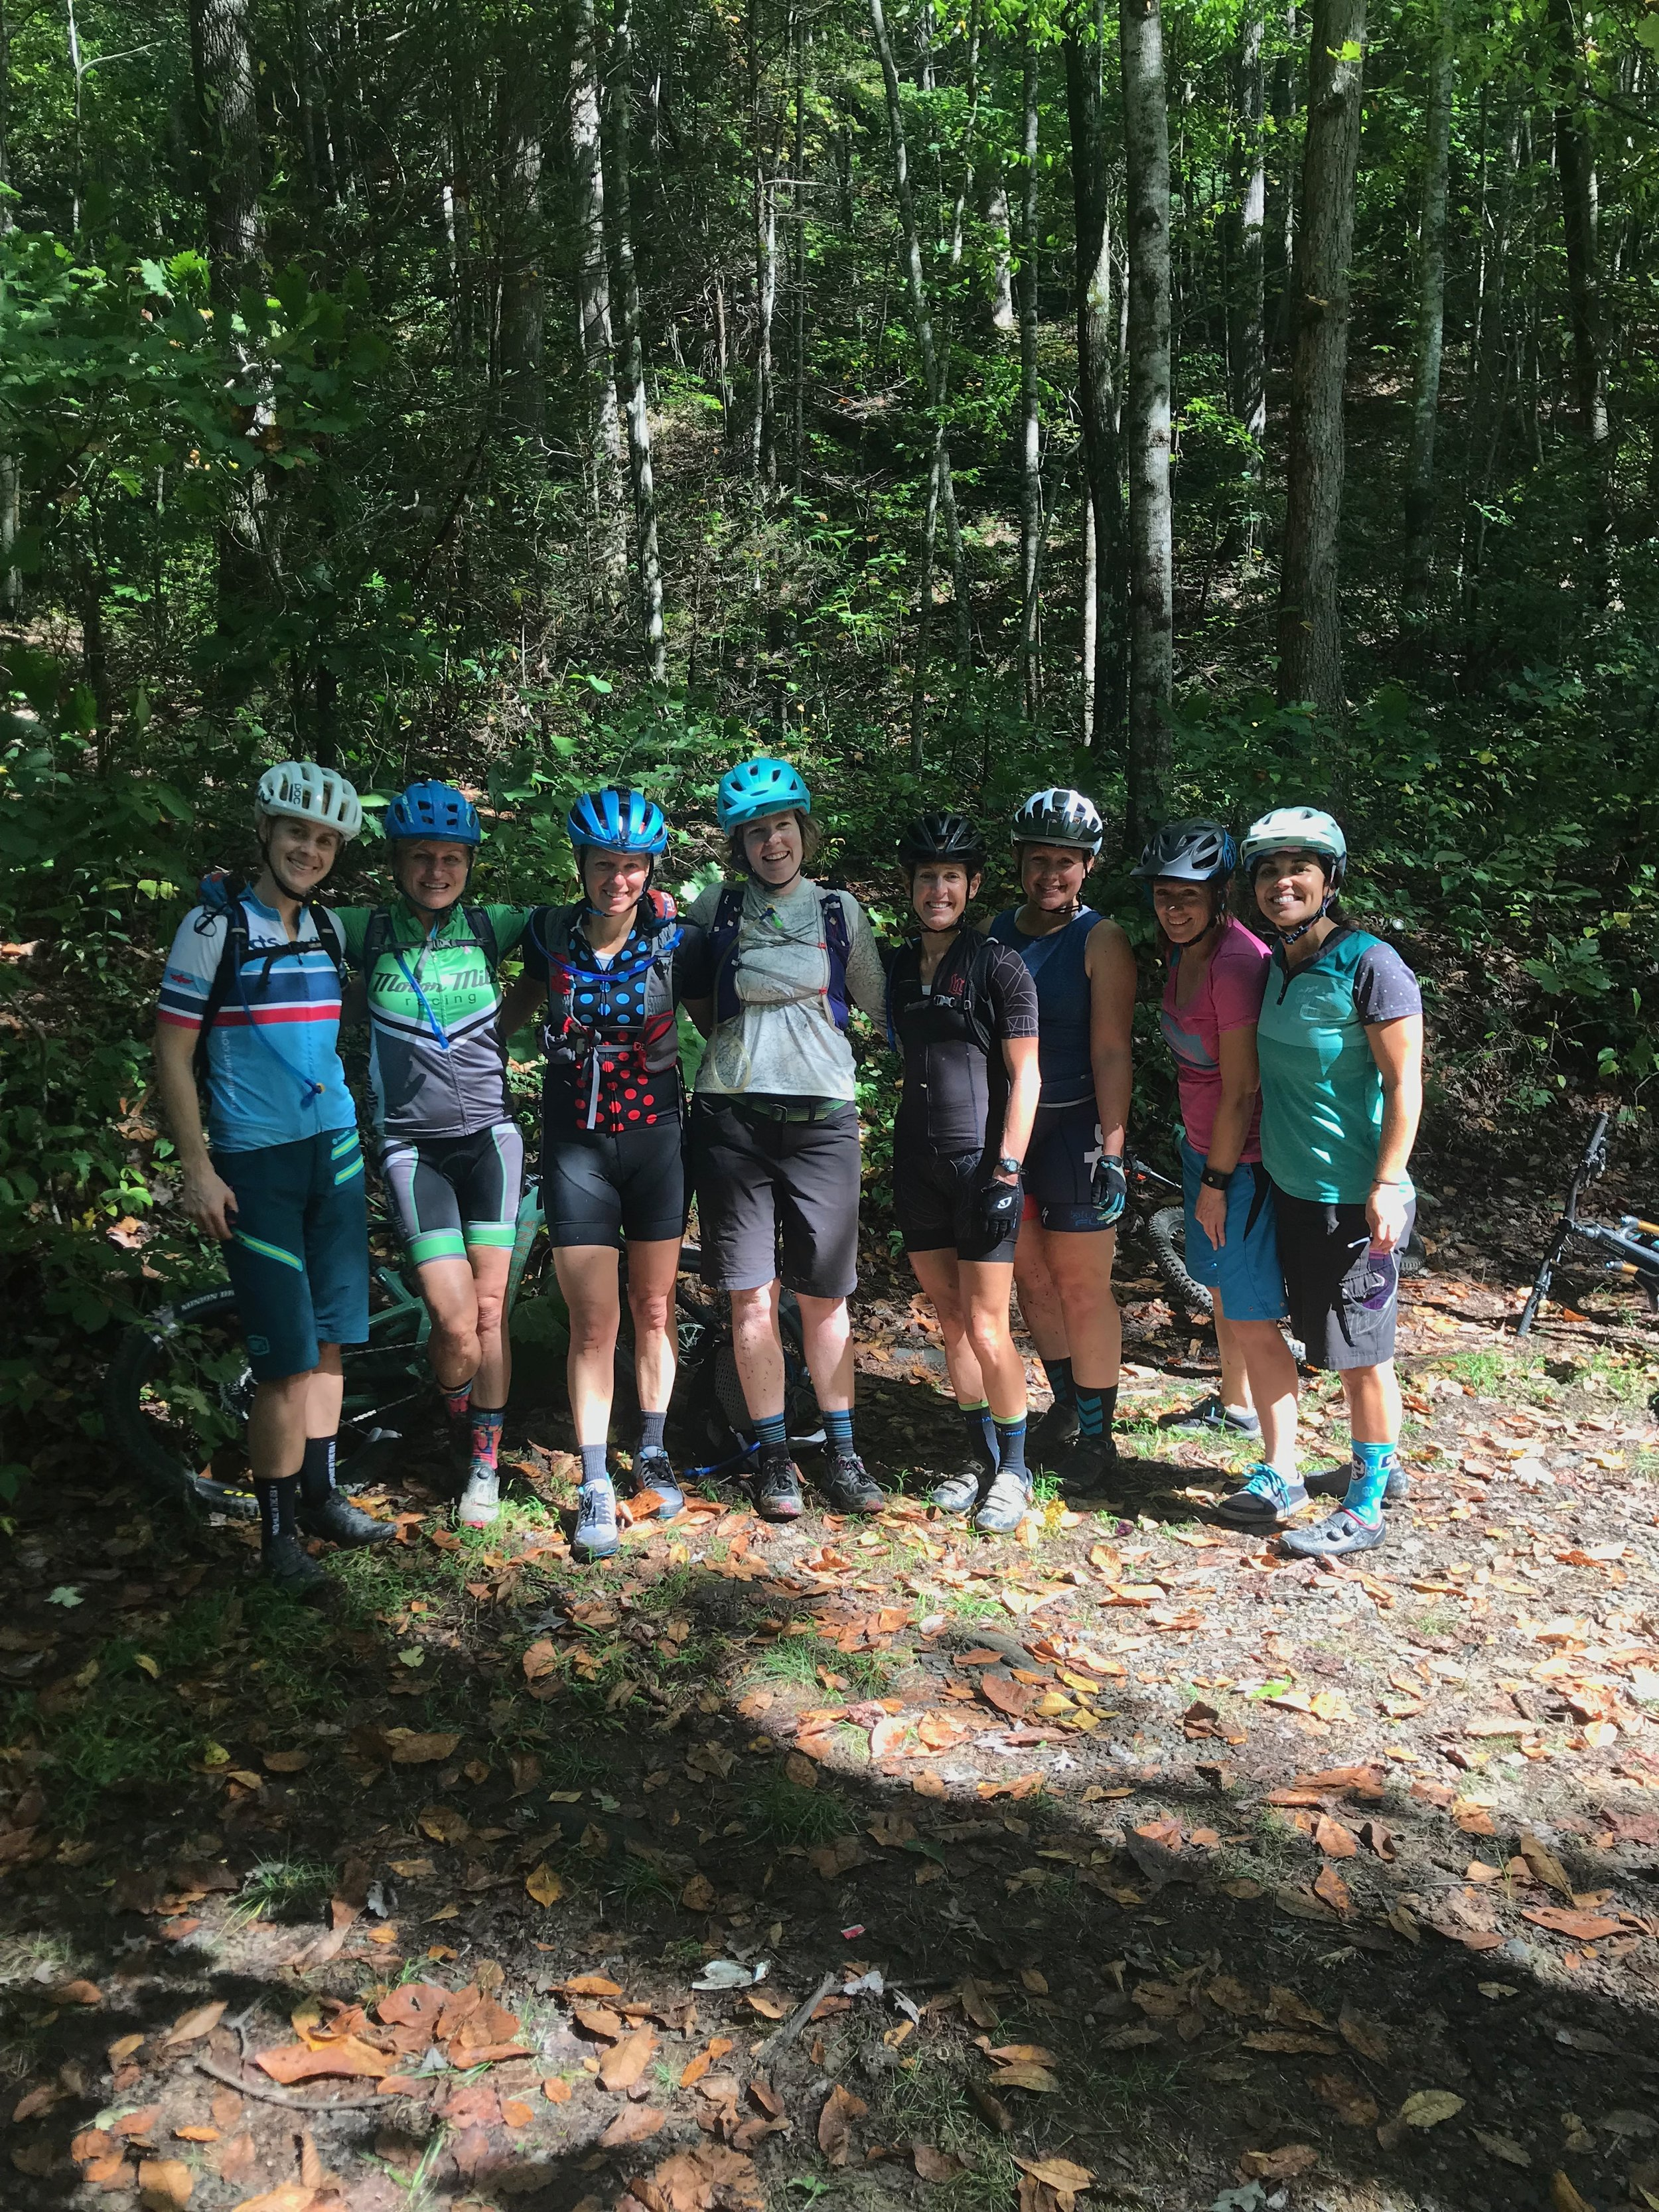 Elevated Ride Camp was worth every penny in Brevard NC. I have been to about 3 mountain bike clinics but Elevated Rides was true in being intermediate/advanced. Left camp with more confidence in riding technical trails. Great coaches and the food was fantastic! — Star, Chattanooga, Tennessee